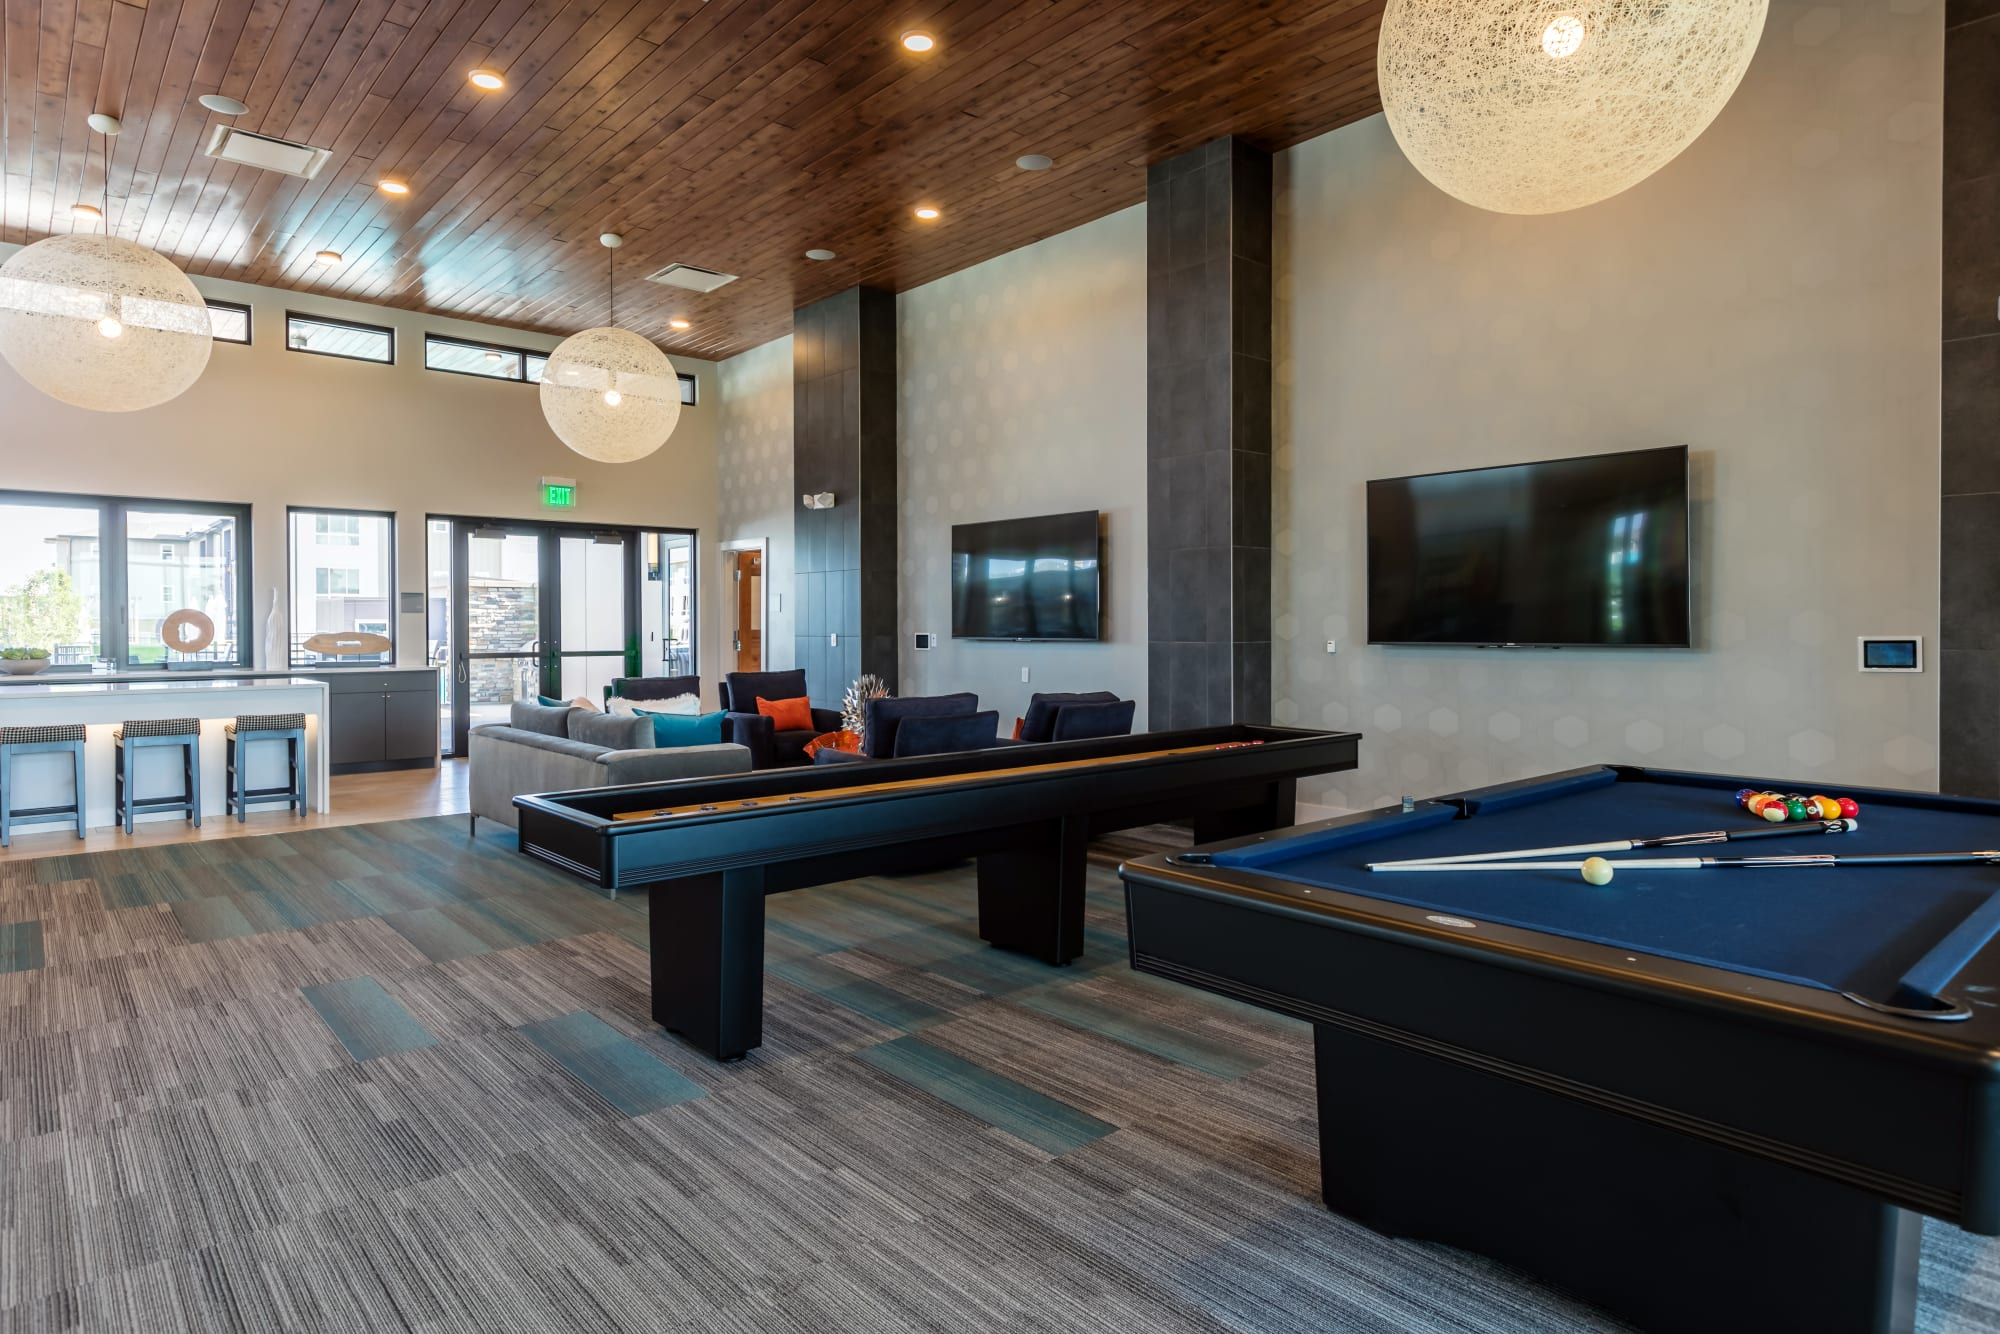 The game room, with billiards and shuffleboard, at Strata Apartments in Denver, Colorado